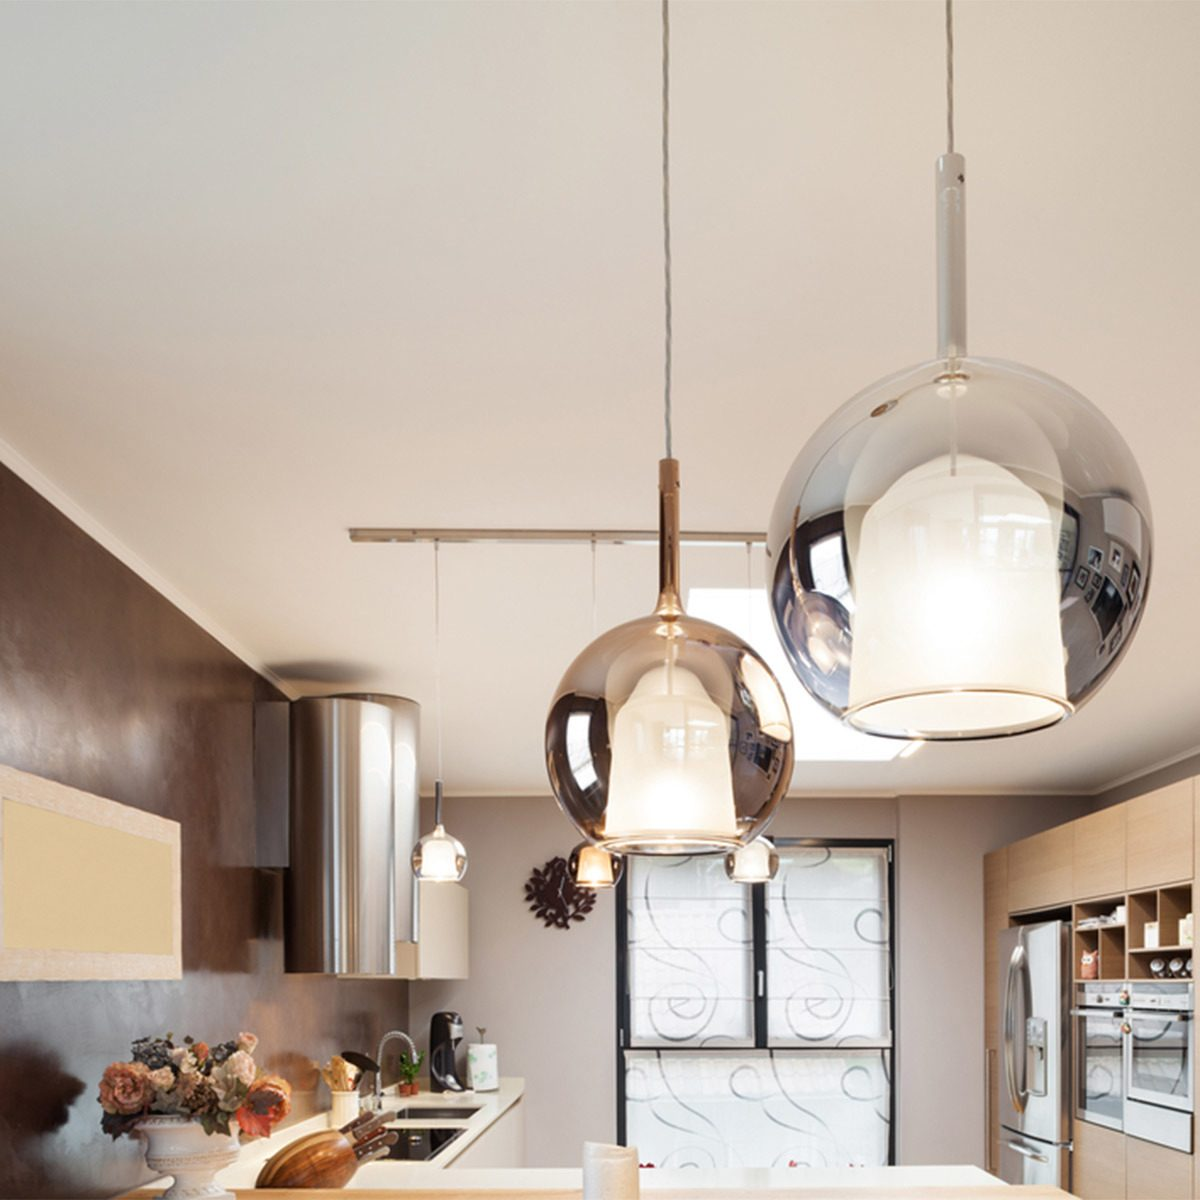 Replace Dated Light Fixtures in kitchen with modern pendant lights